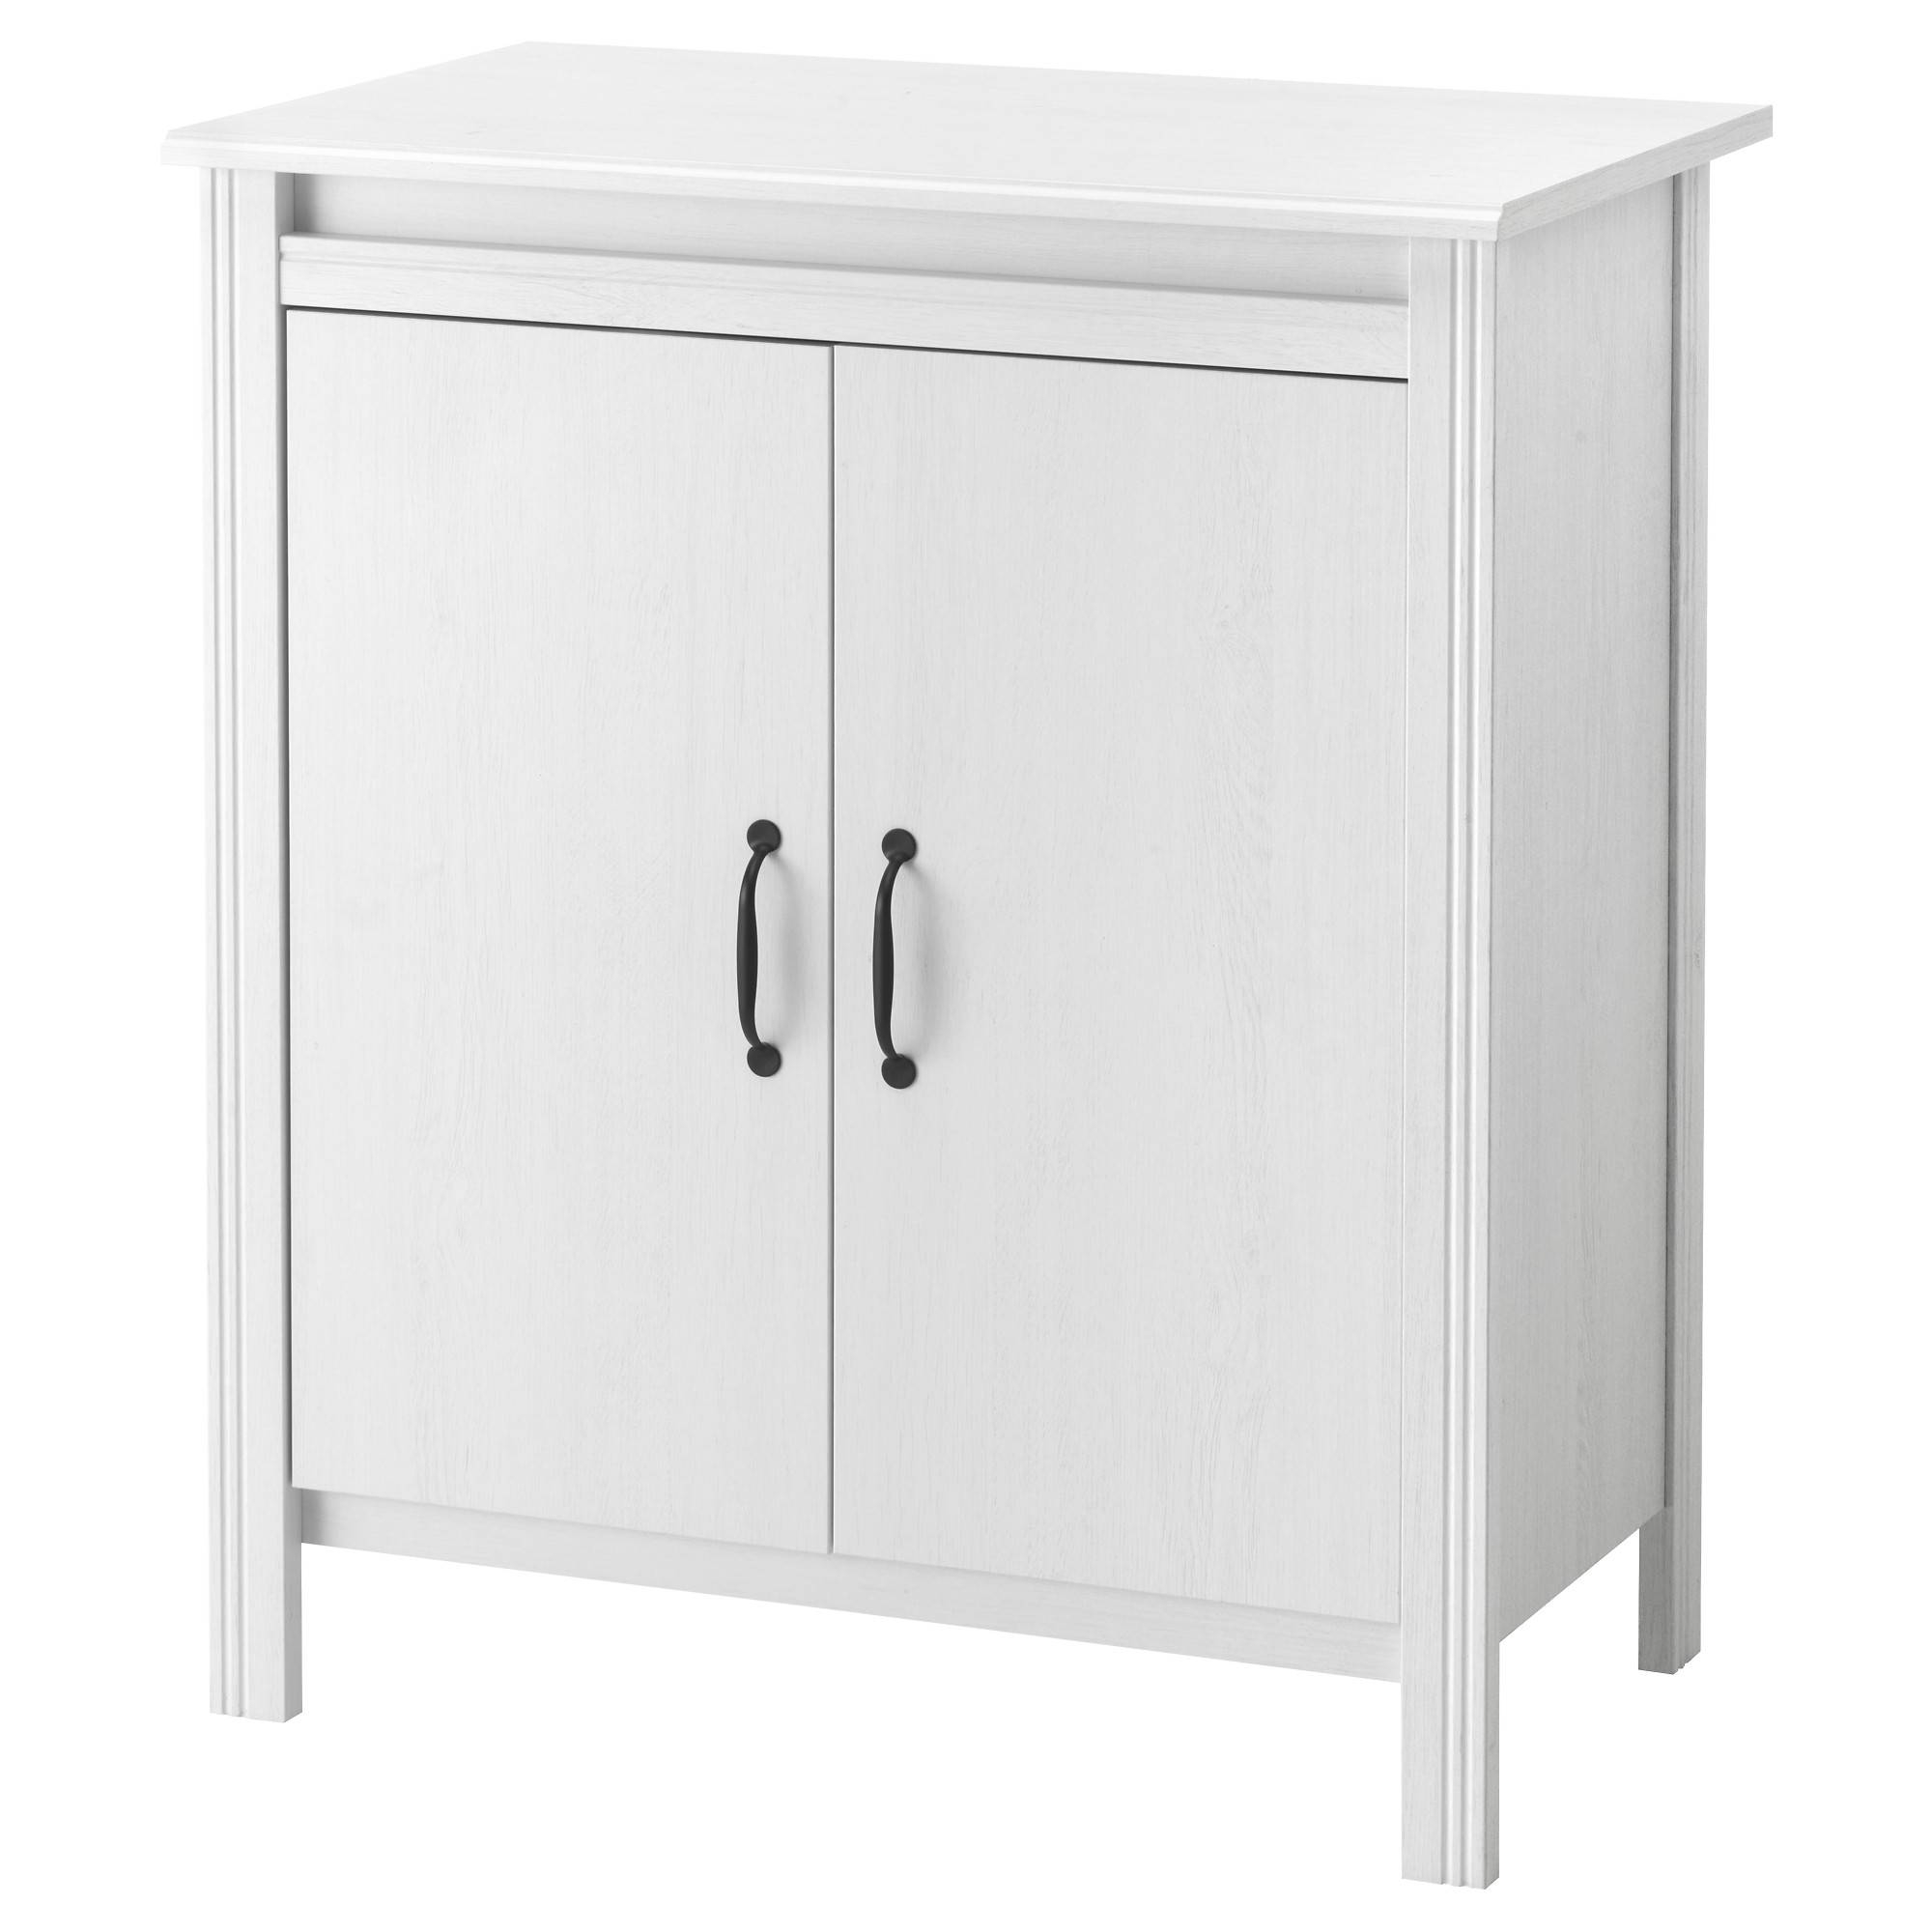 Cabinets & Sideboards - Ikea with regard to 14 Inch Deep Sideboards (Image 10 of 15)